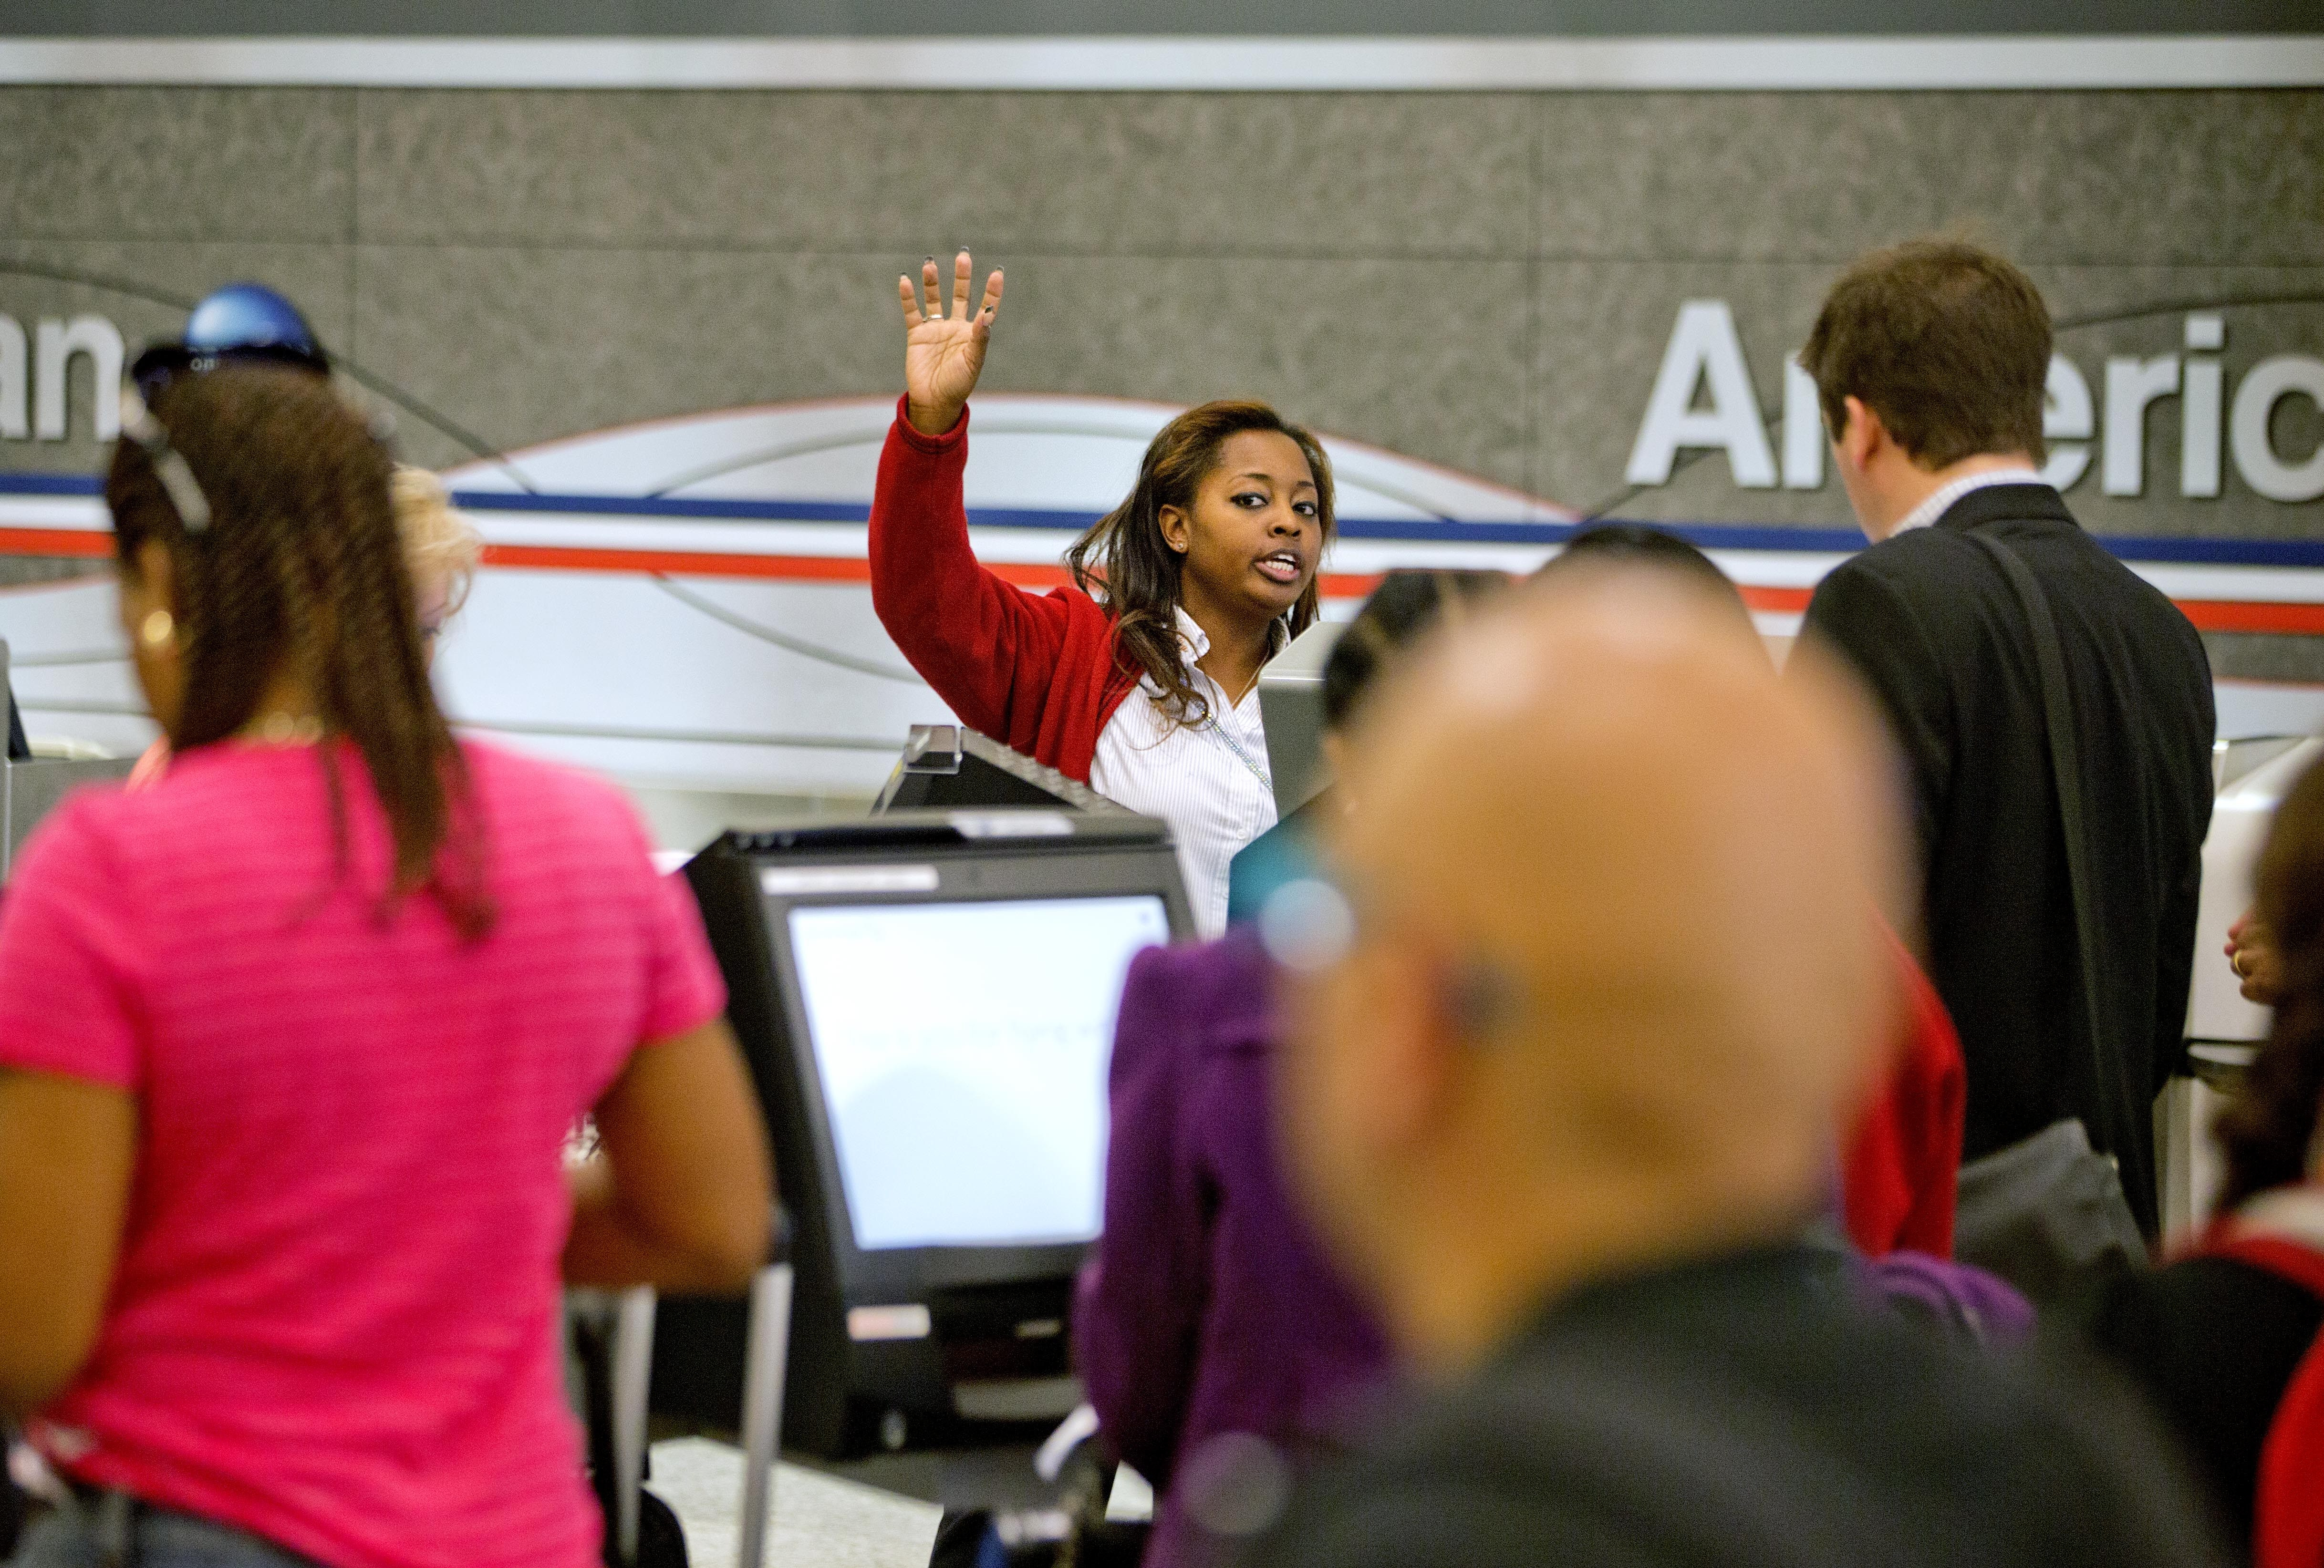 To be compensated when you get bumped from a flight, you need to follow the airline's rules.